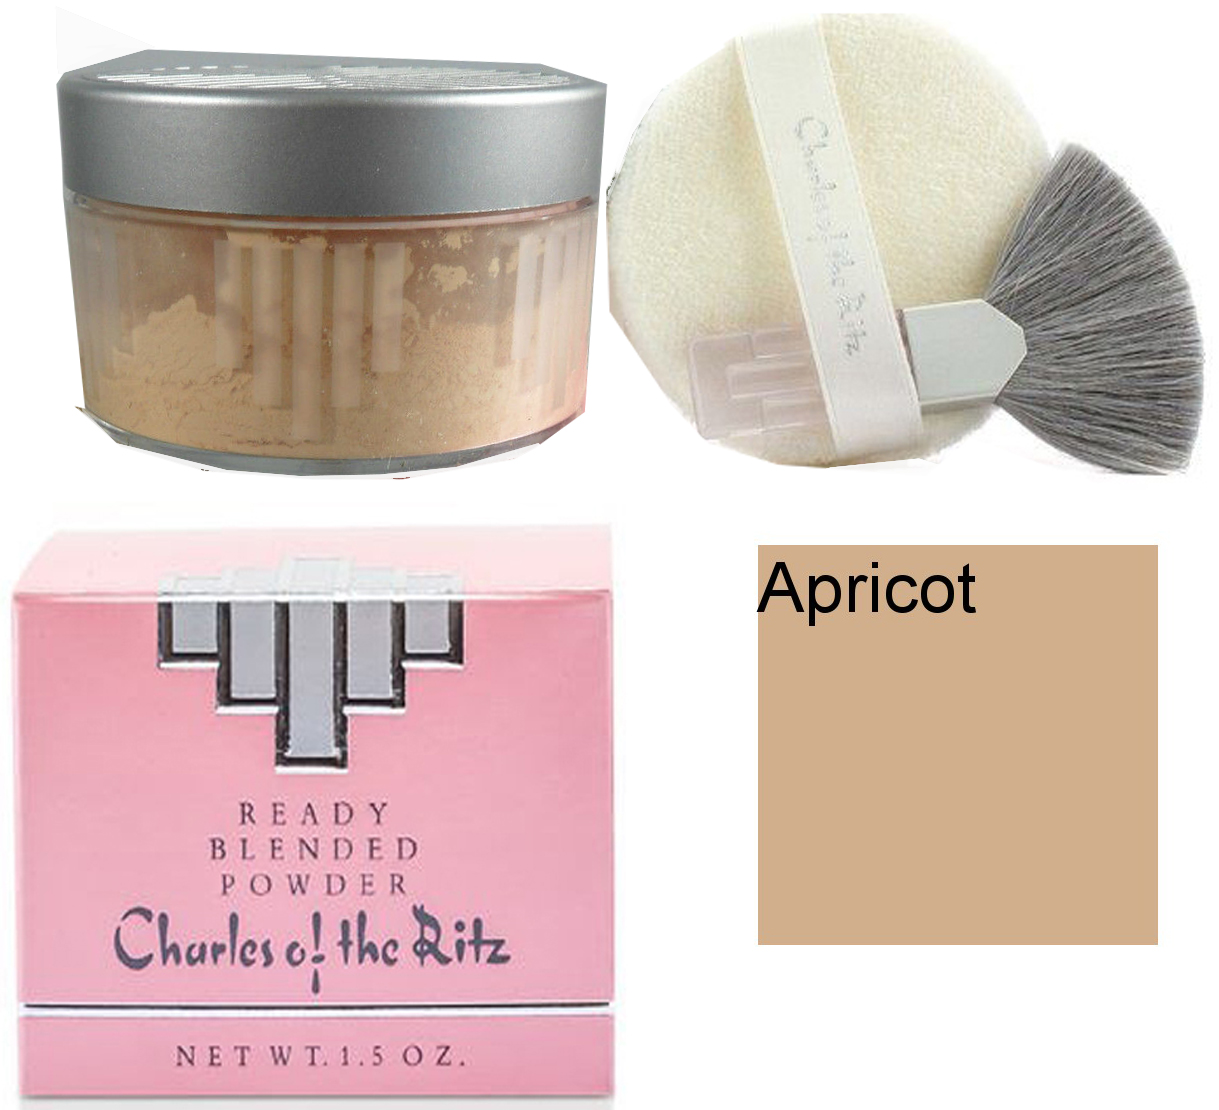 Charles of the Ritz Custom Blended Powder - Apricot